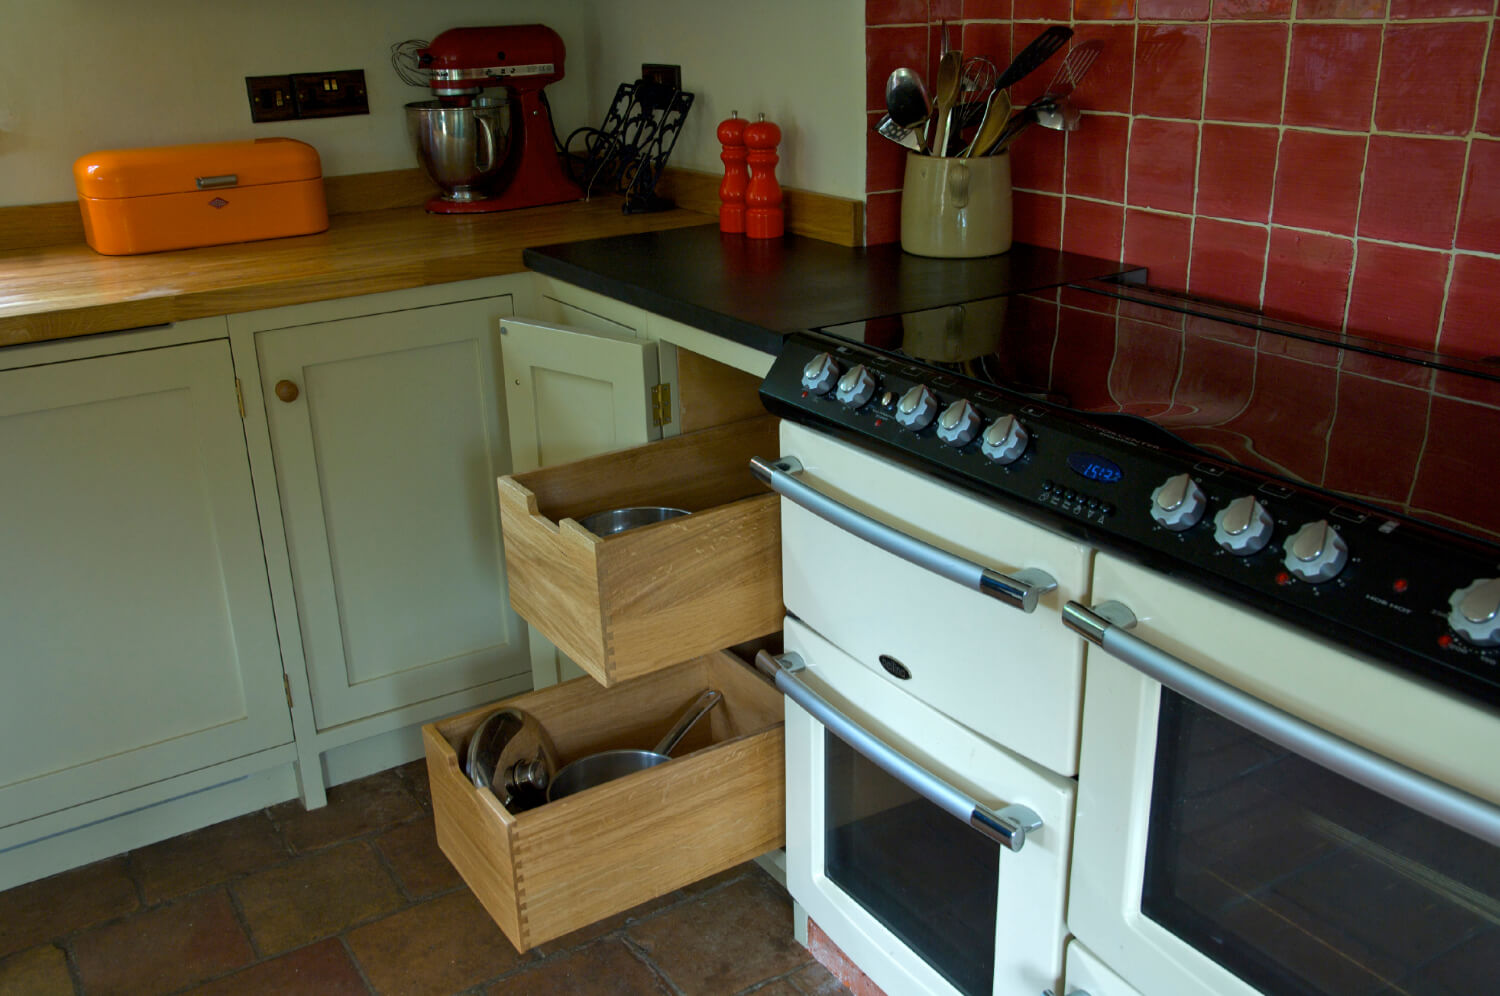 Pull out internal dovetailed drawers